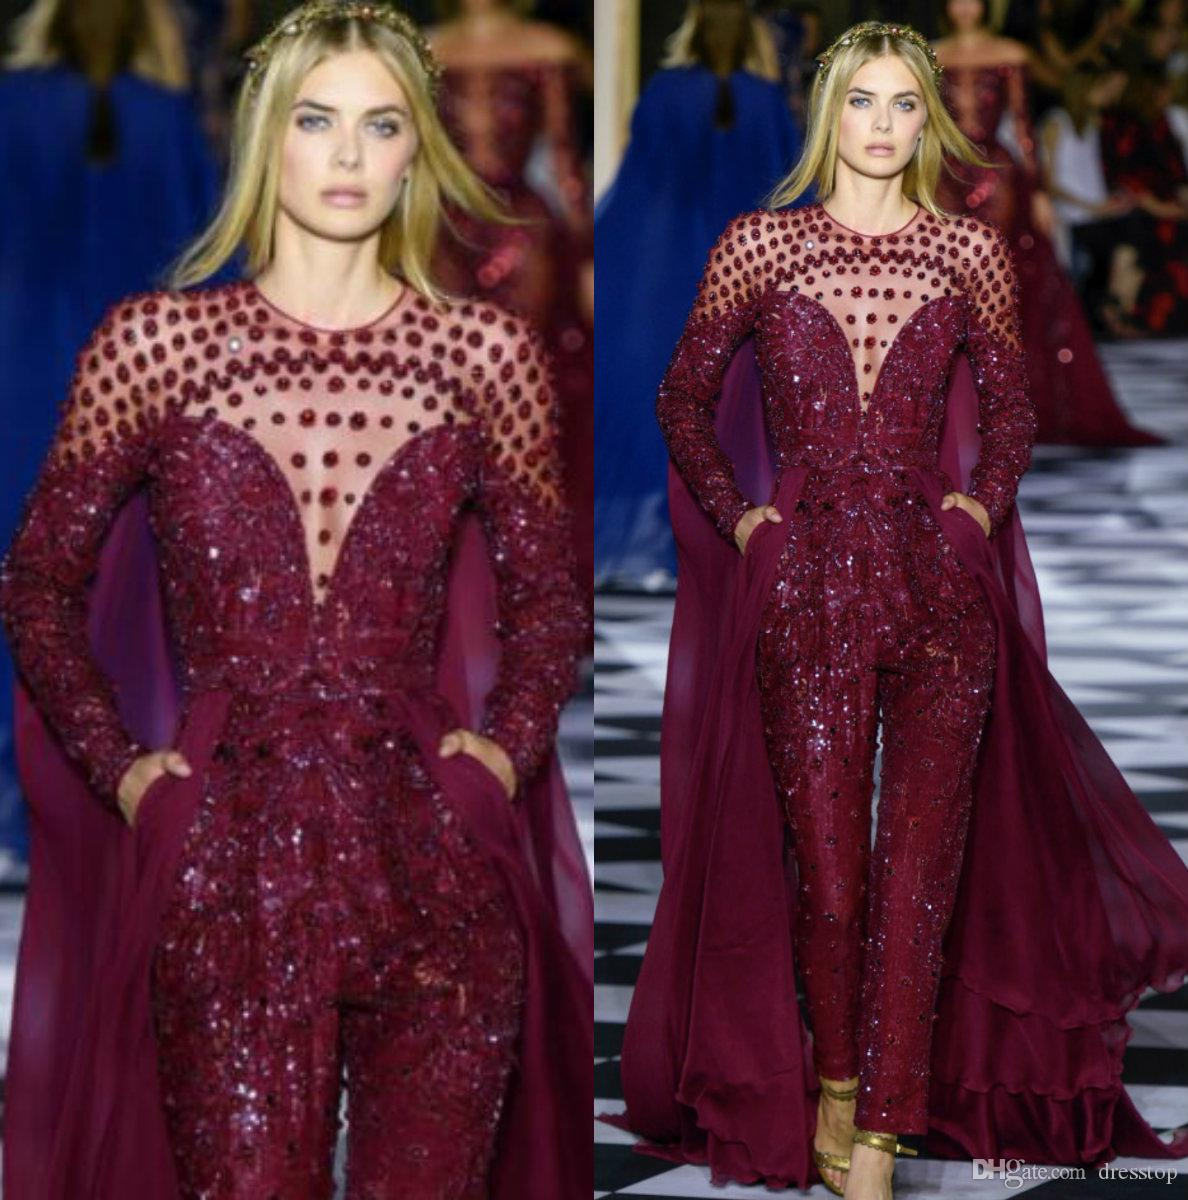 d88ea74c41f Luxury Burgundy Zuhair Murad Evening Dresses Long Sleeve Jewel Neck Prom  Gowns Custom Formal Red Carpet Jumpsuit Party Dress With Pocket Long  Dresses Online ...